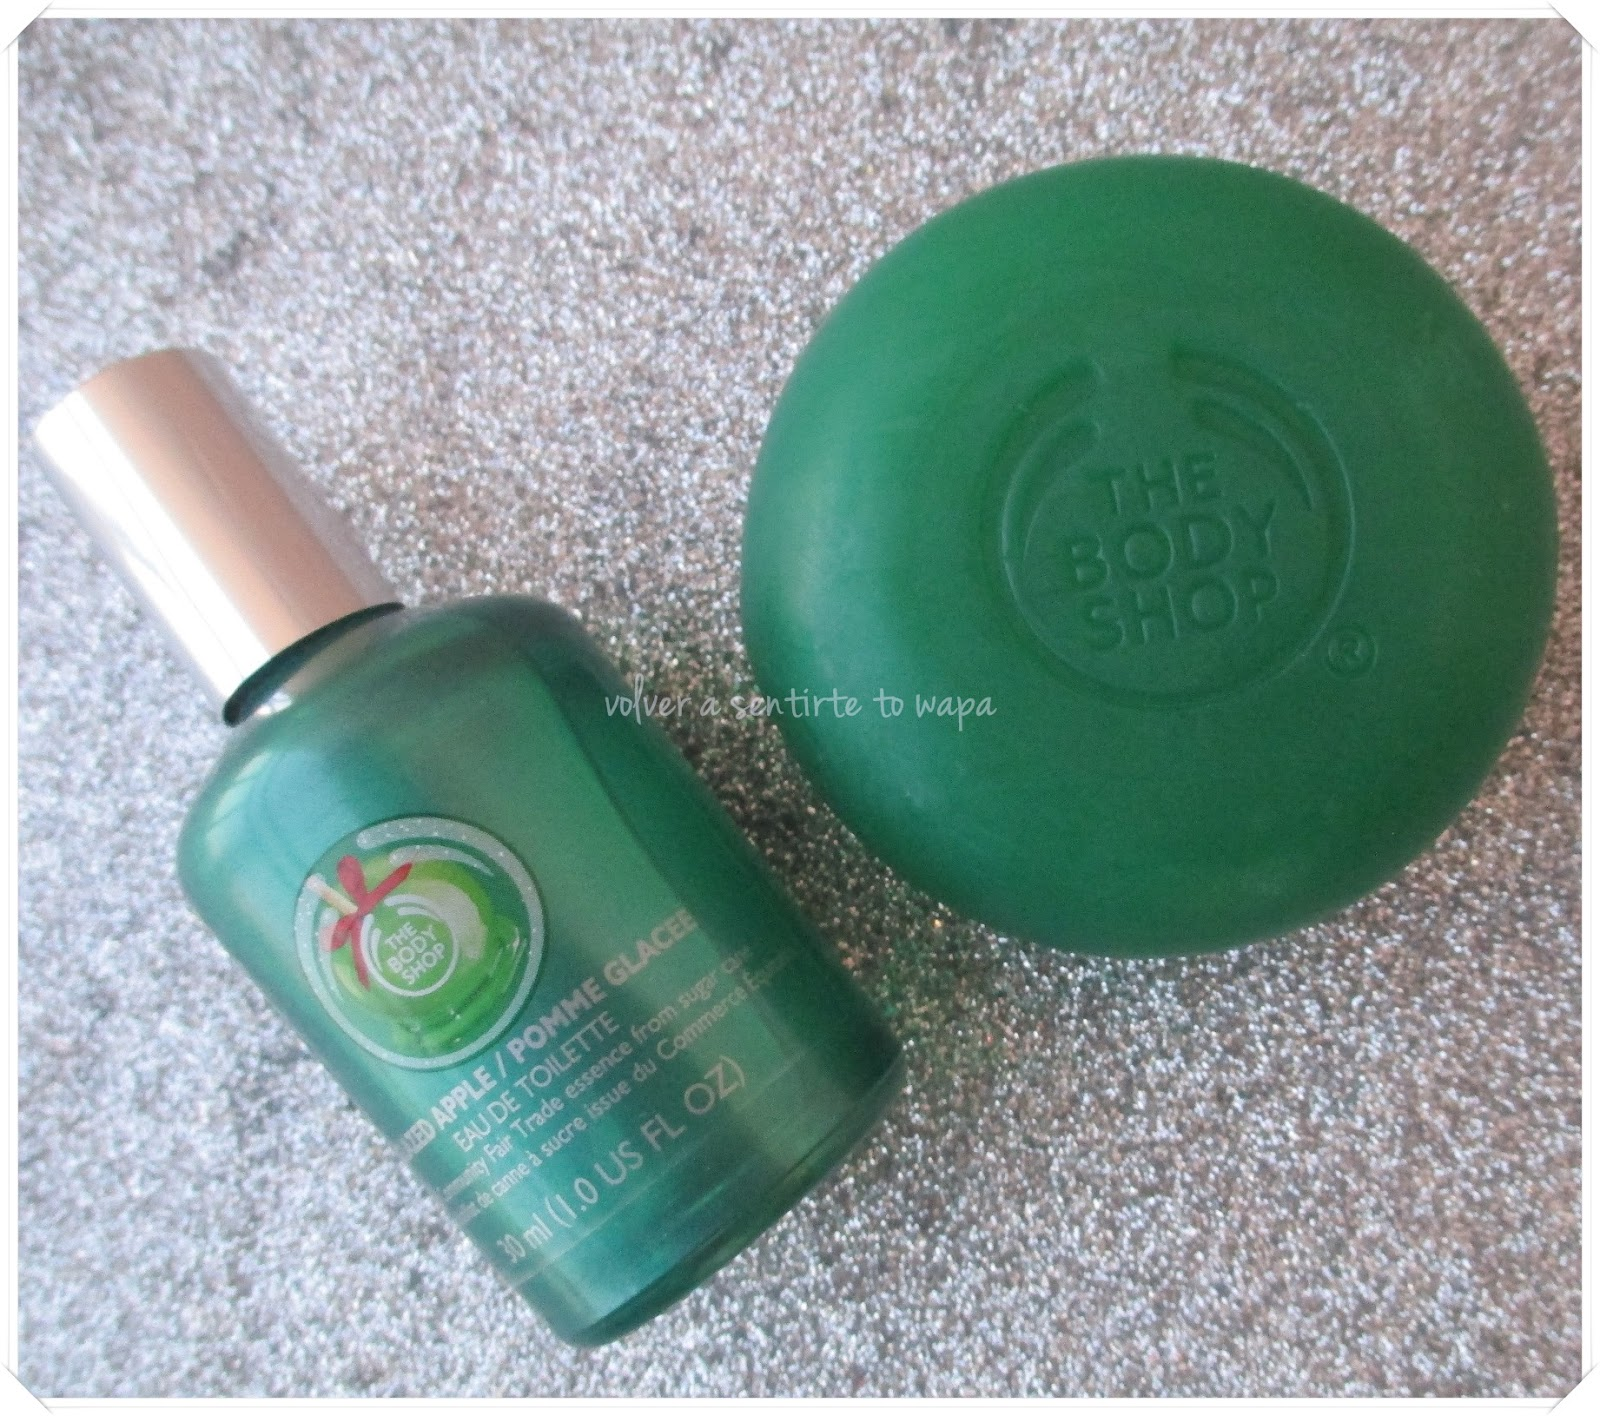 Rebajas en The Body Shop - Colonia y Jabón de Manzana Glaze